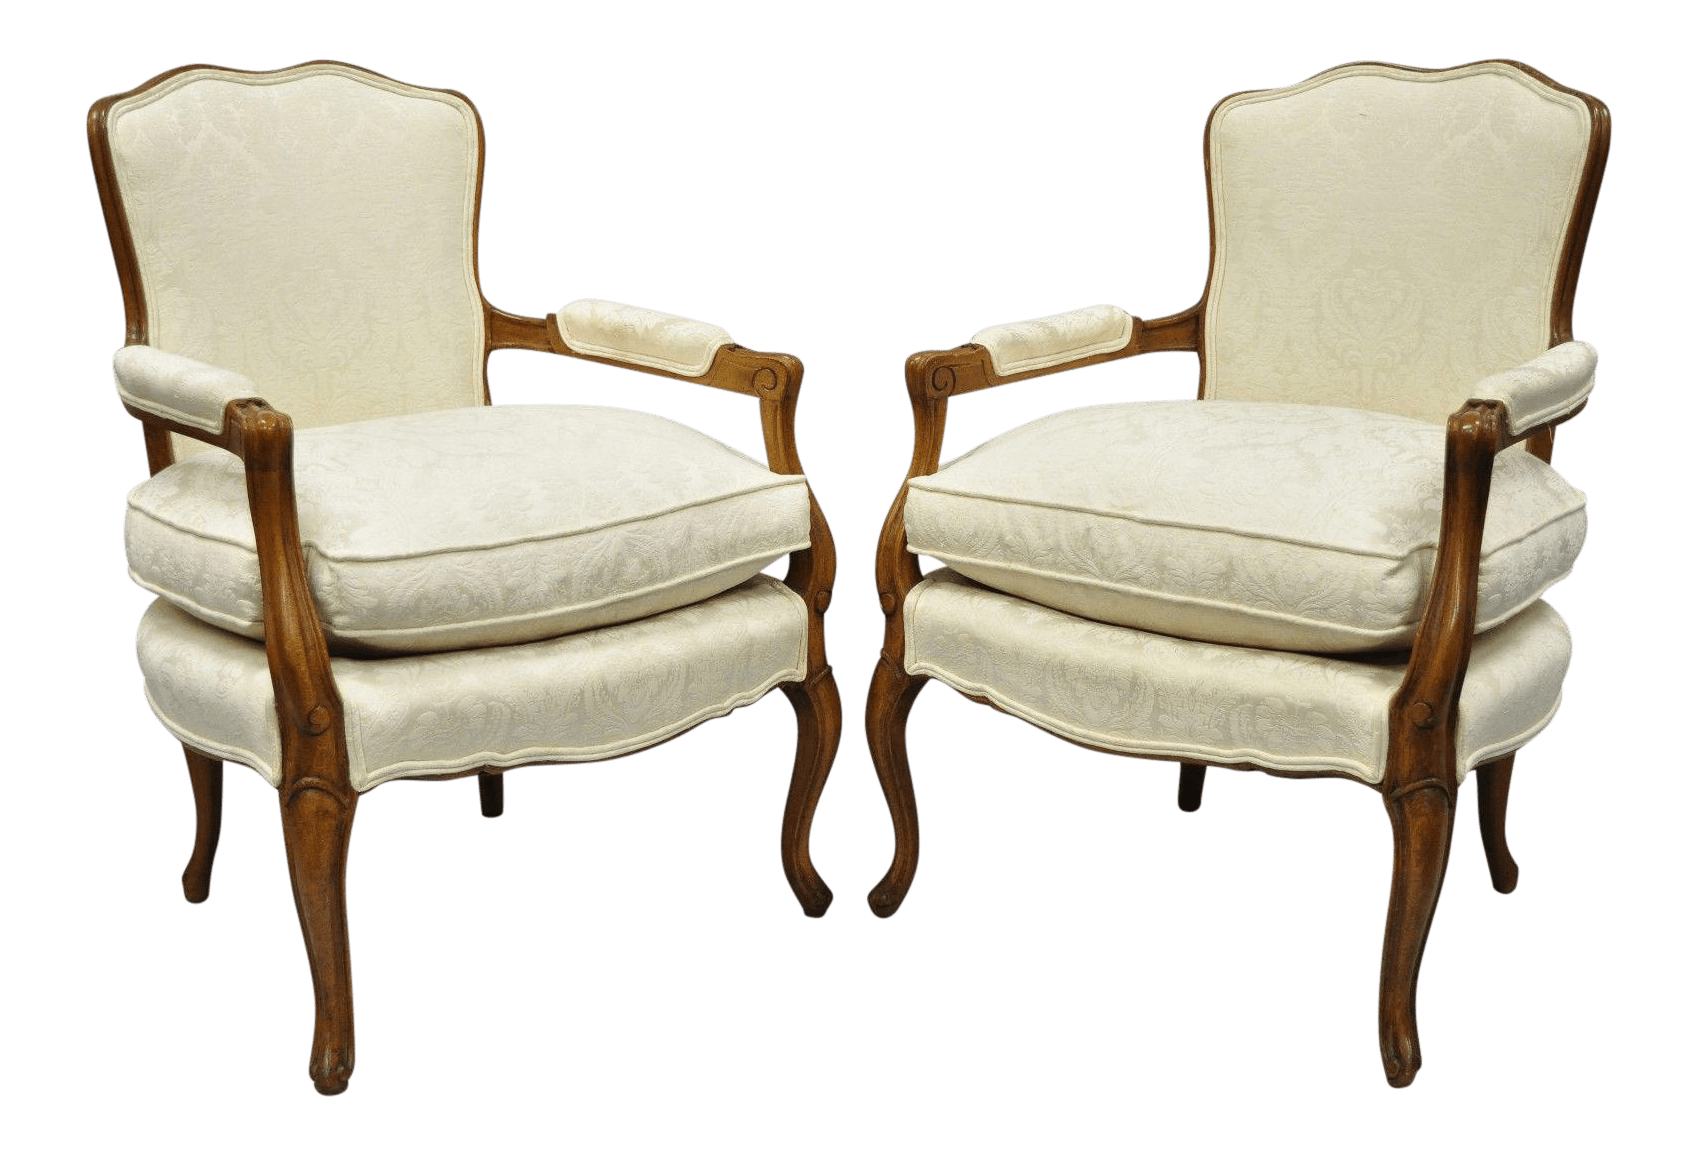 country french chairs upholstered chromcraft table and louis xv style fauteuil armchairs white a pair for sale